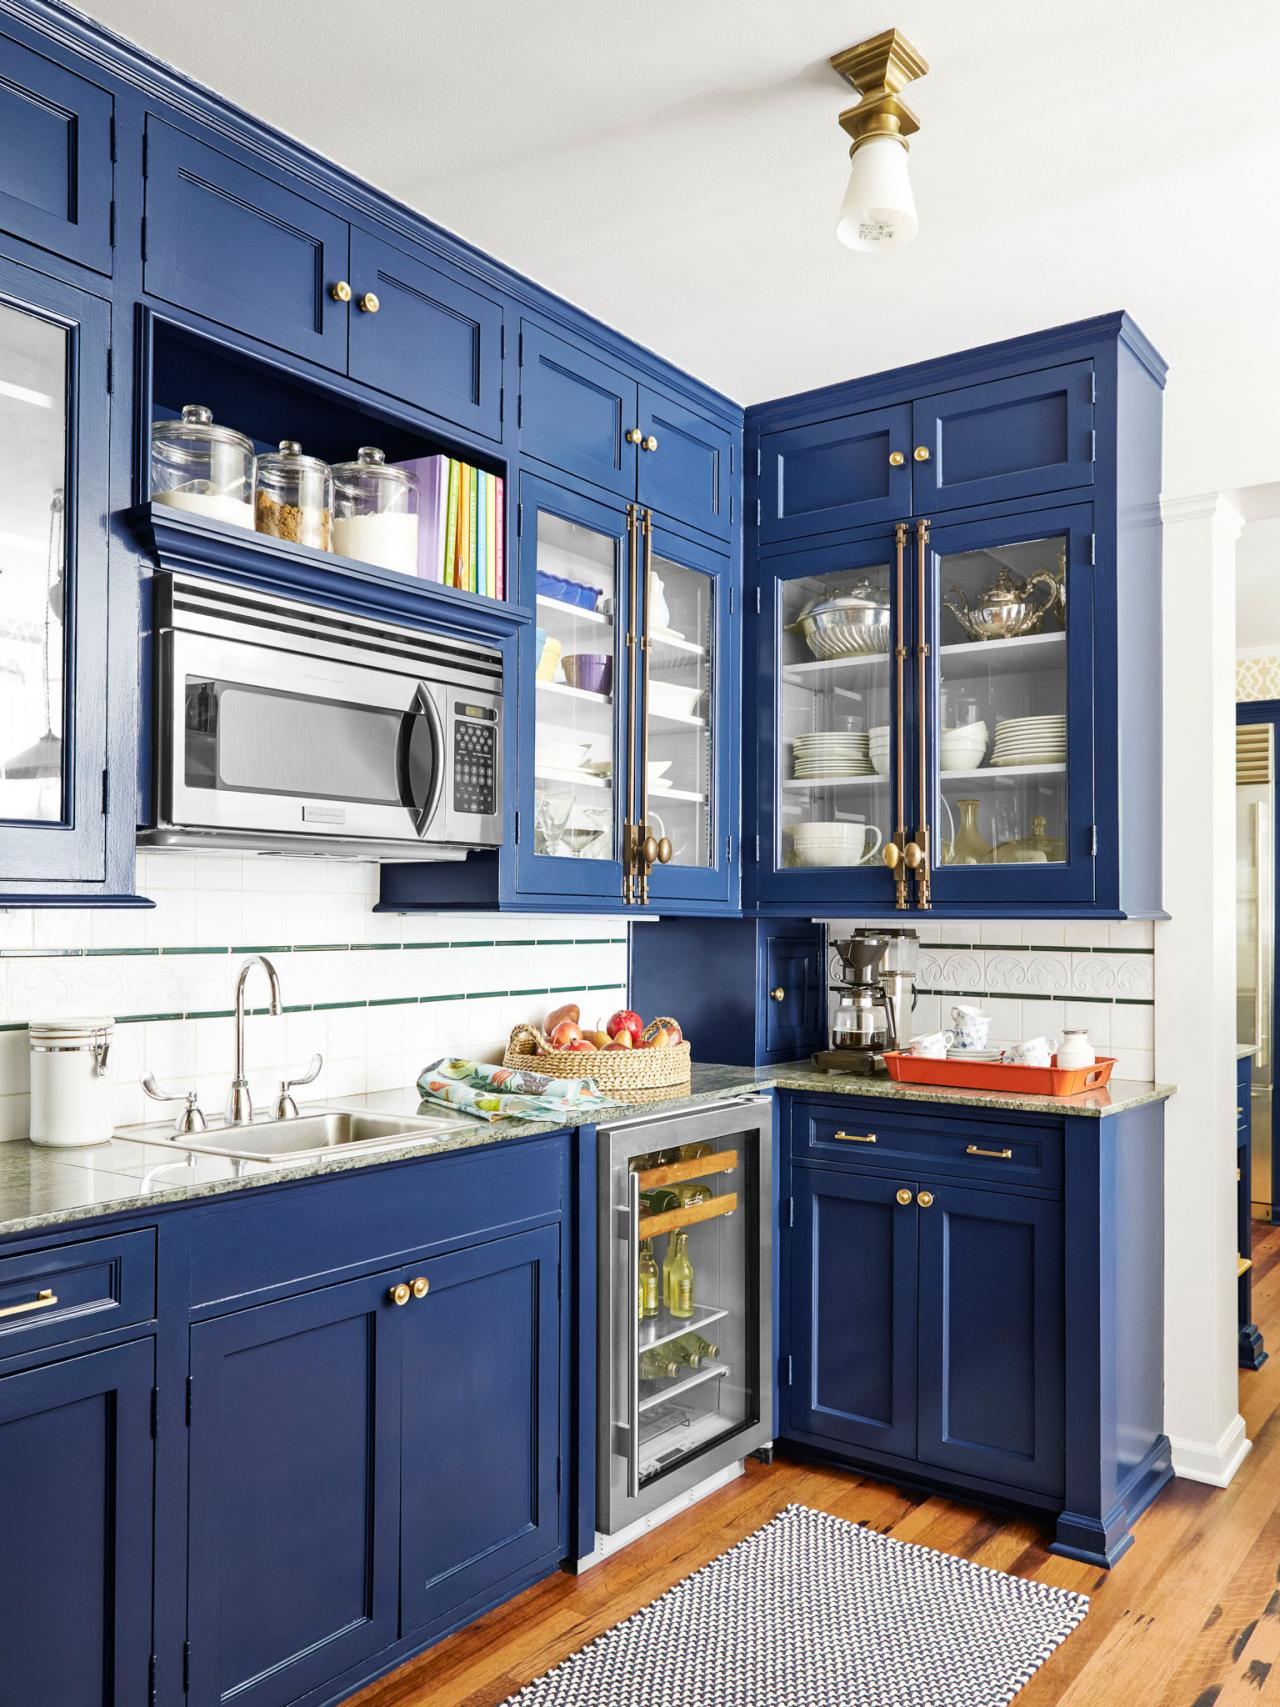 How To Paint Cabinets Hgtv